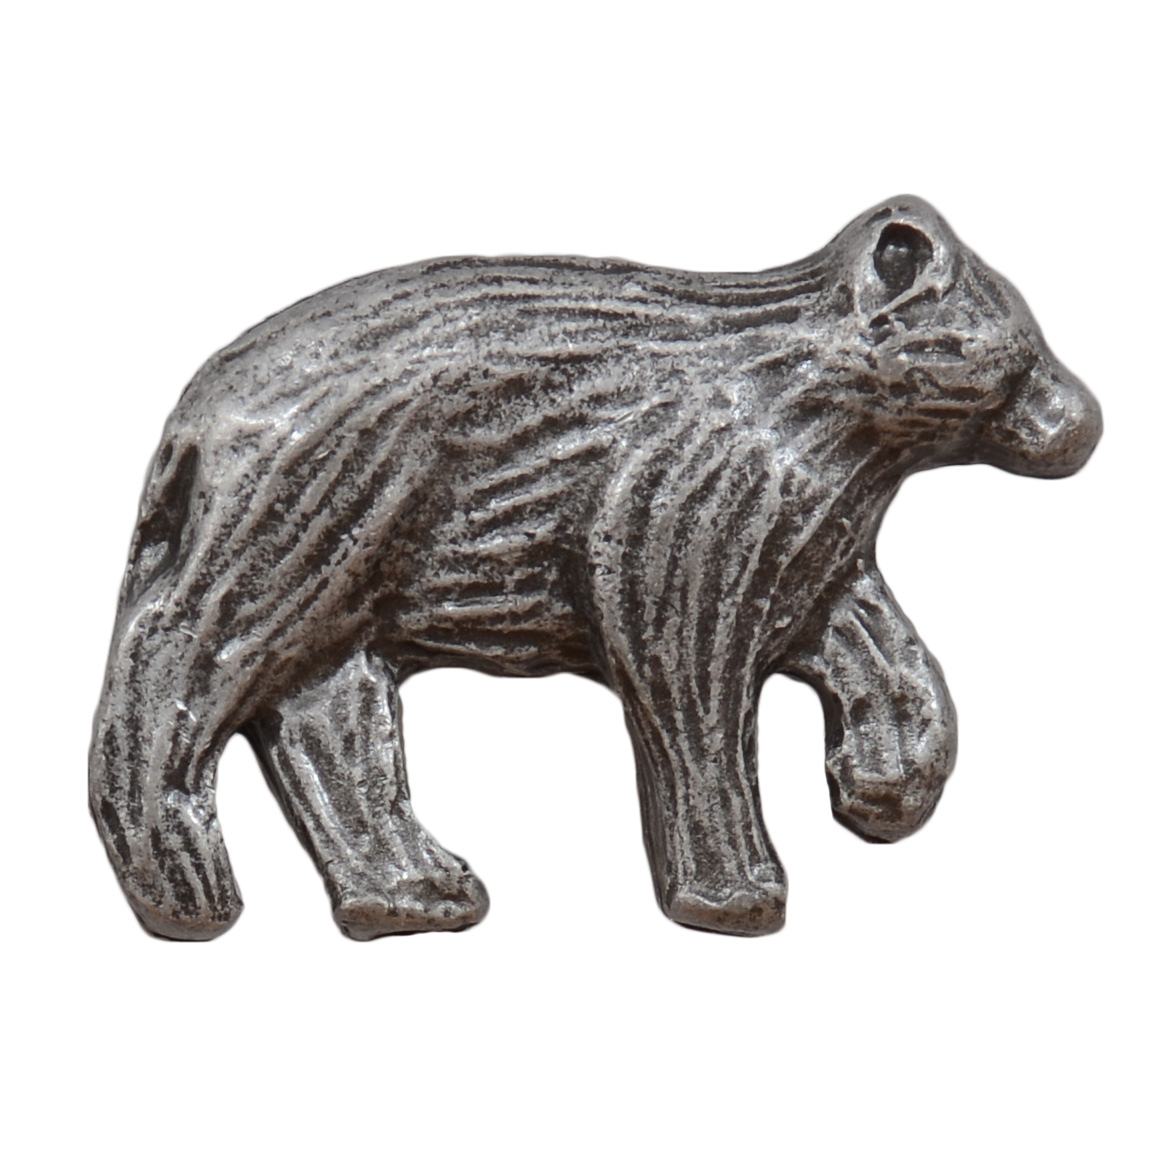 Walking Bear Cabinet Knob - Nose Facing Right